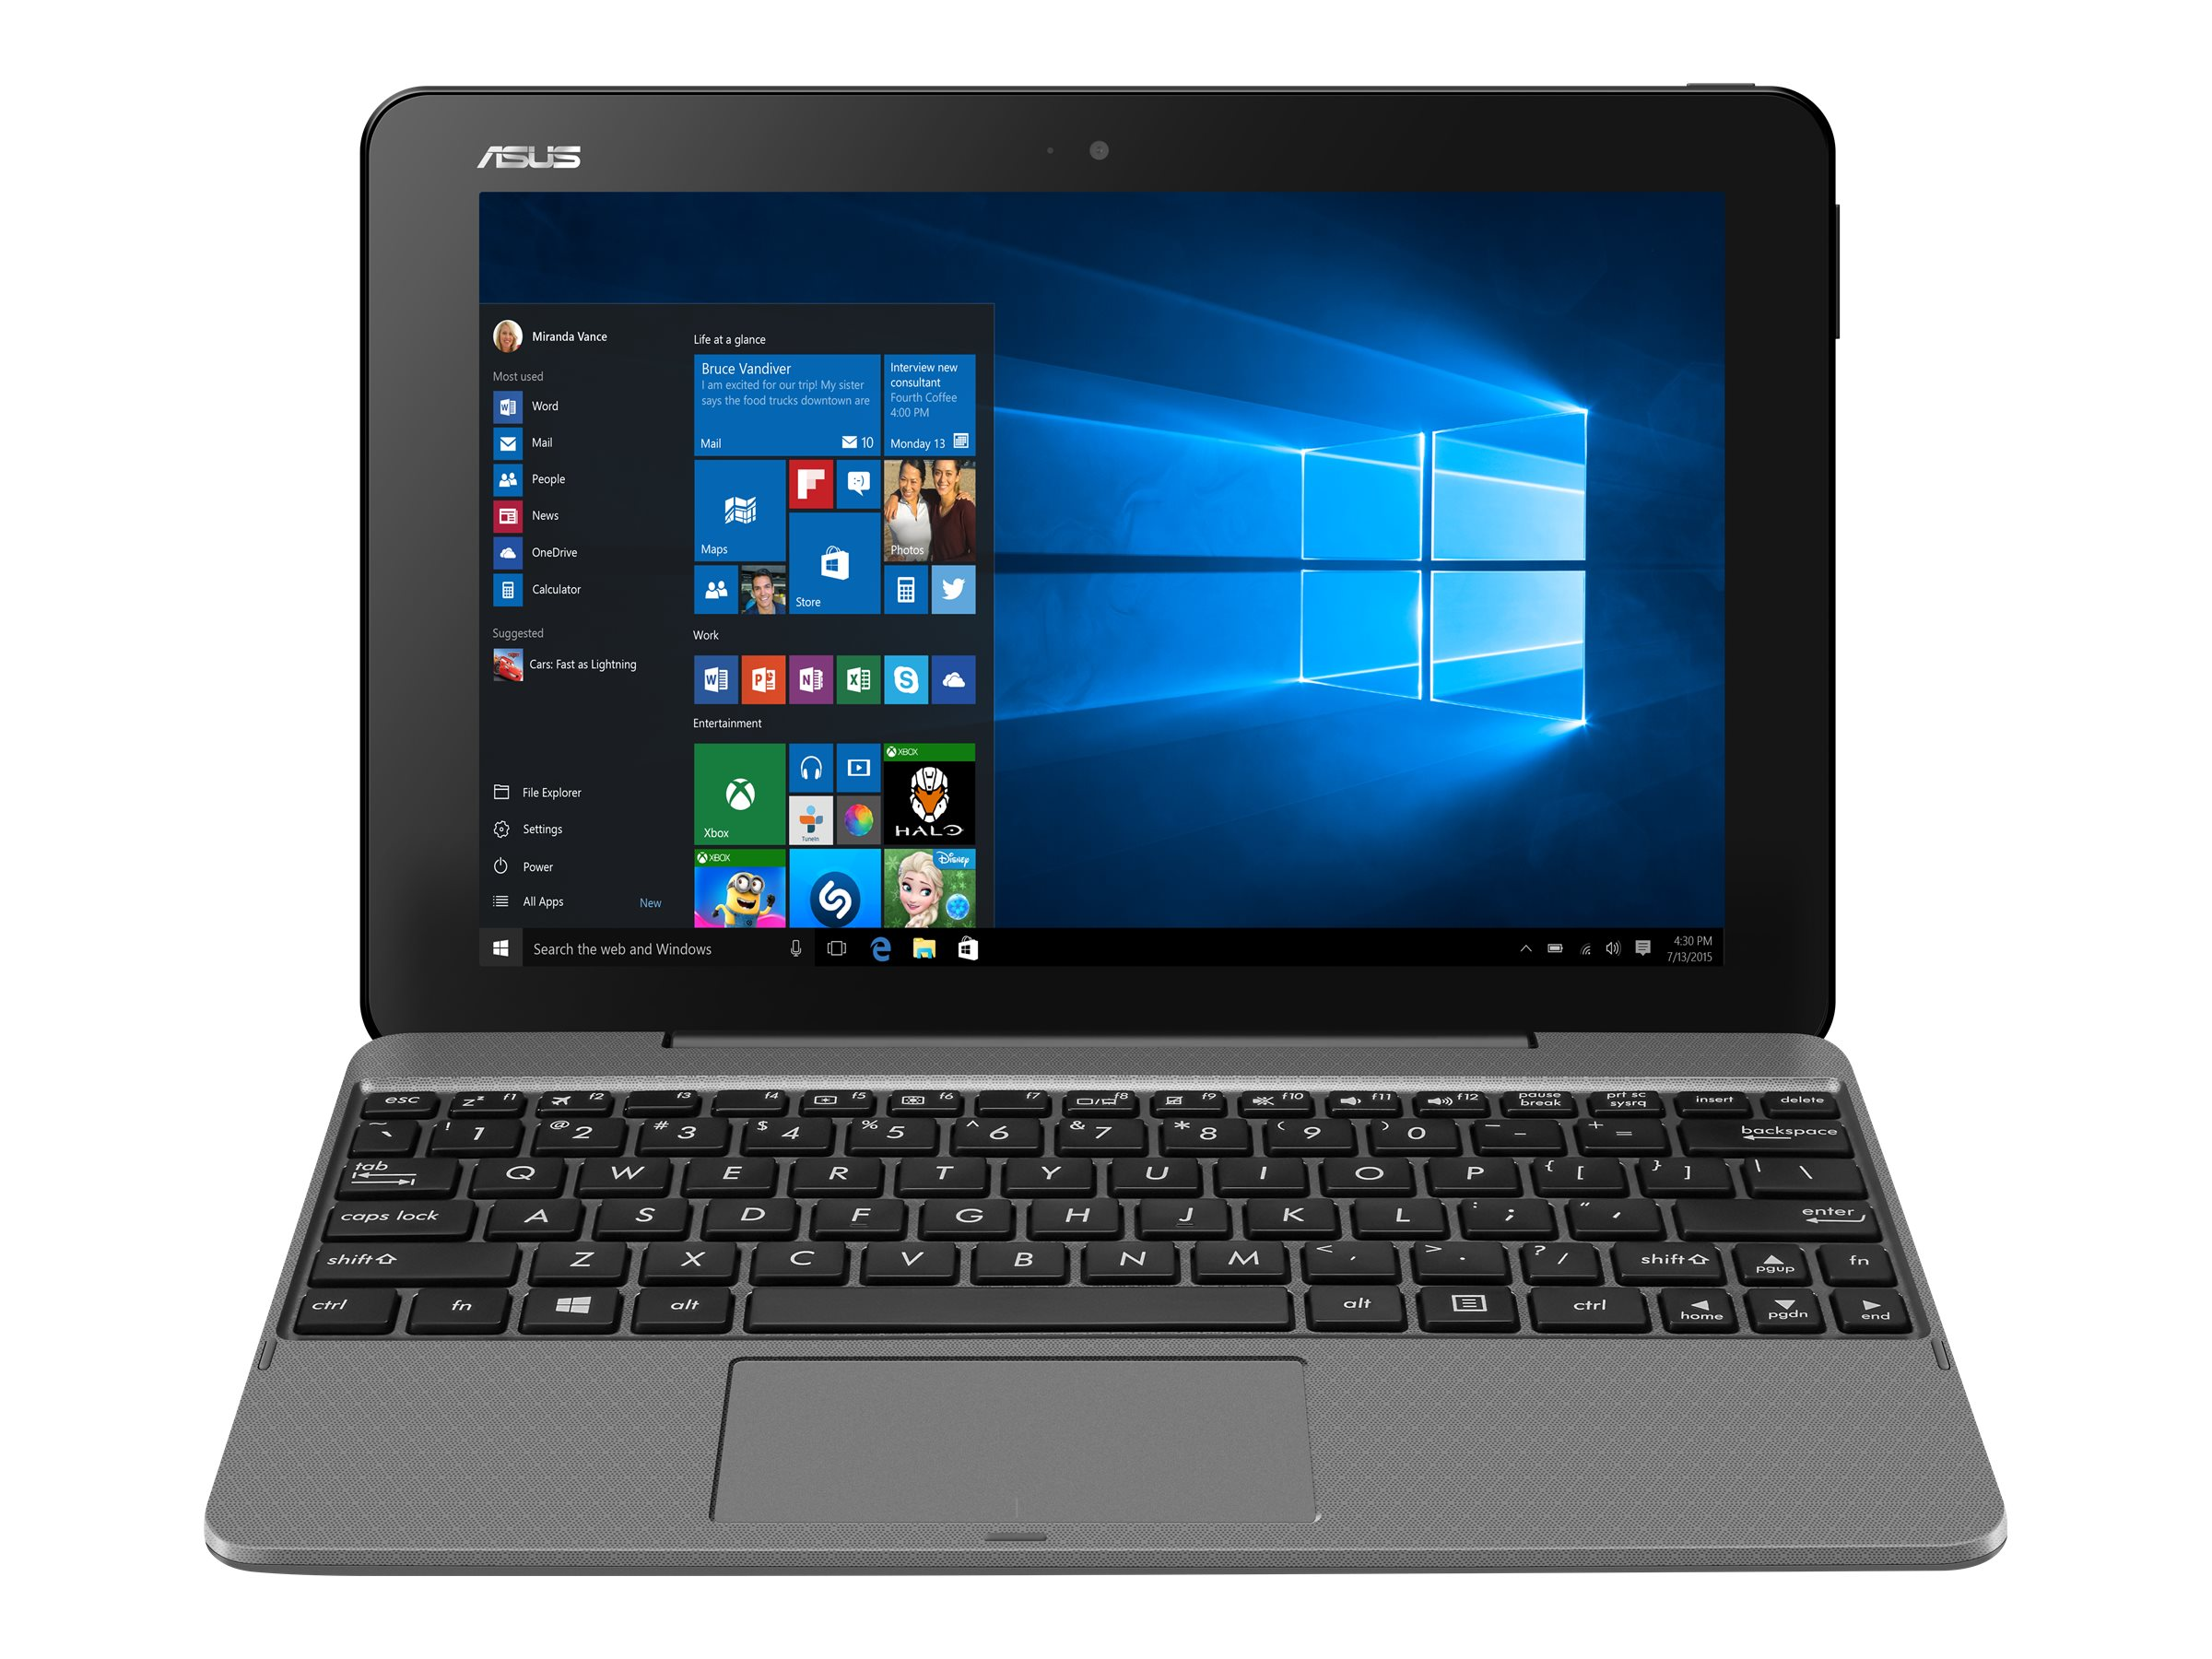 Asus Transformer book T101HA-C4 Atom x5-Z8500 1.44GHz 4GB 64GB abgn BT 2xWC 10.1 WXGA MT W10H64 Gray, T101HA-C4-GR